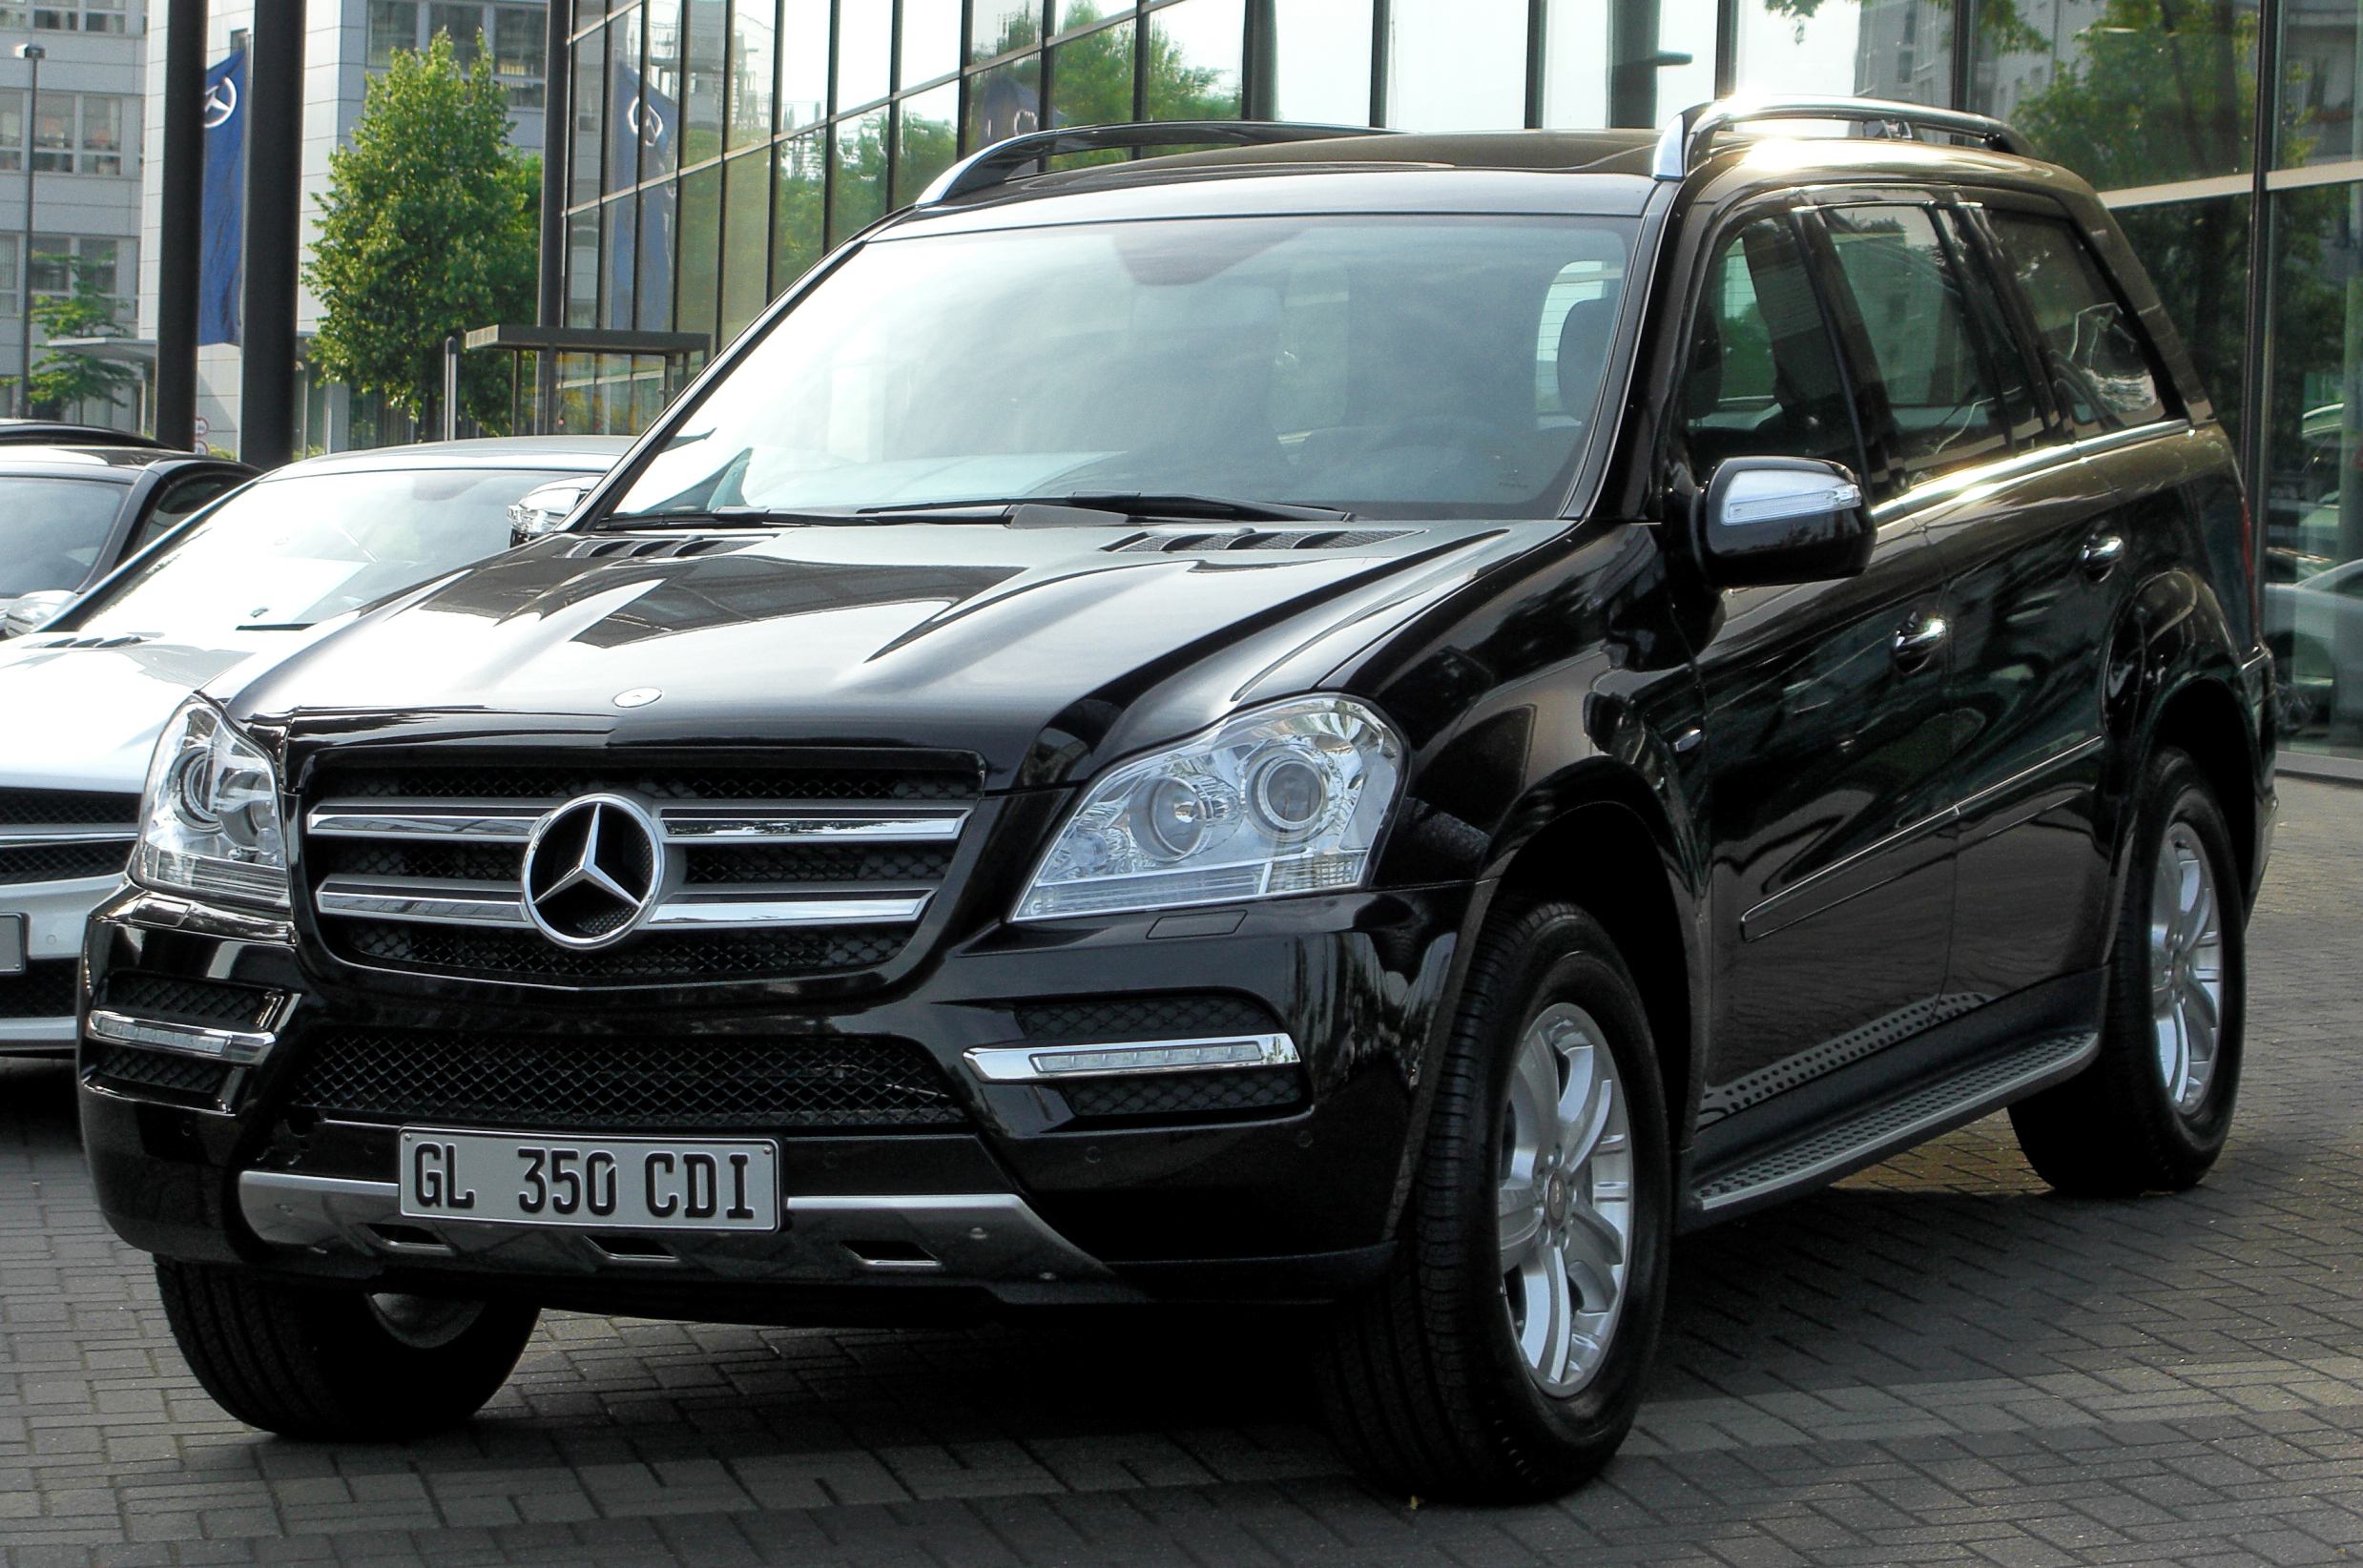 file:mercedes gl 350 cdi blueefficiency 4matic (x164) facelift